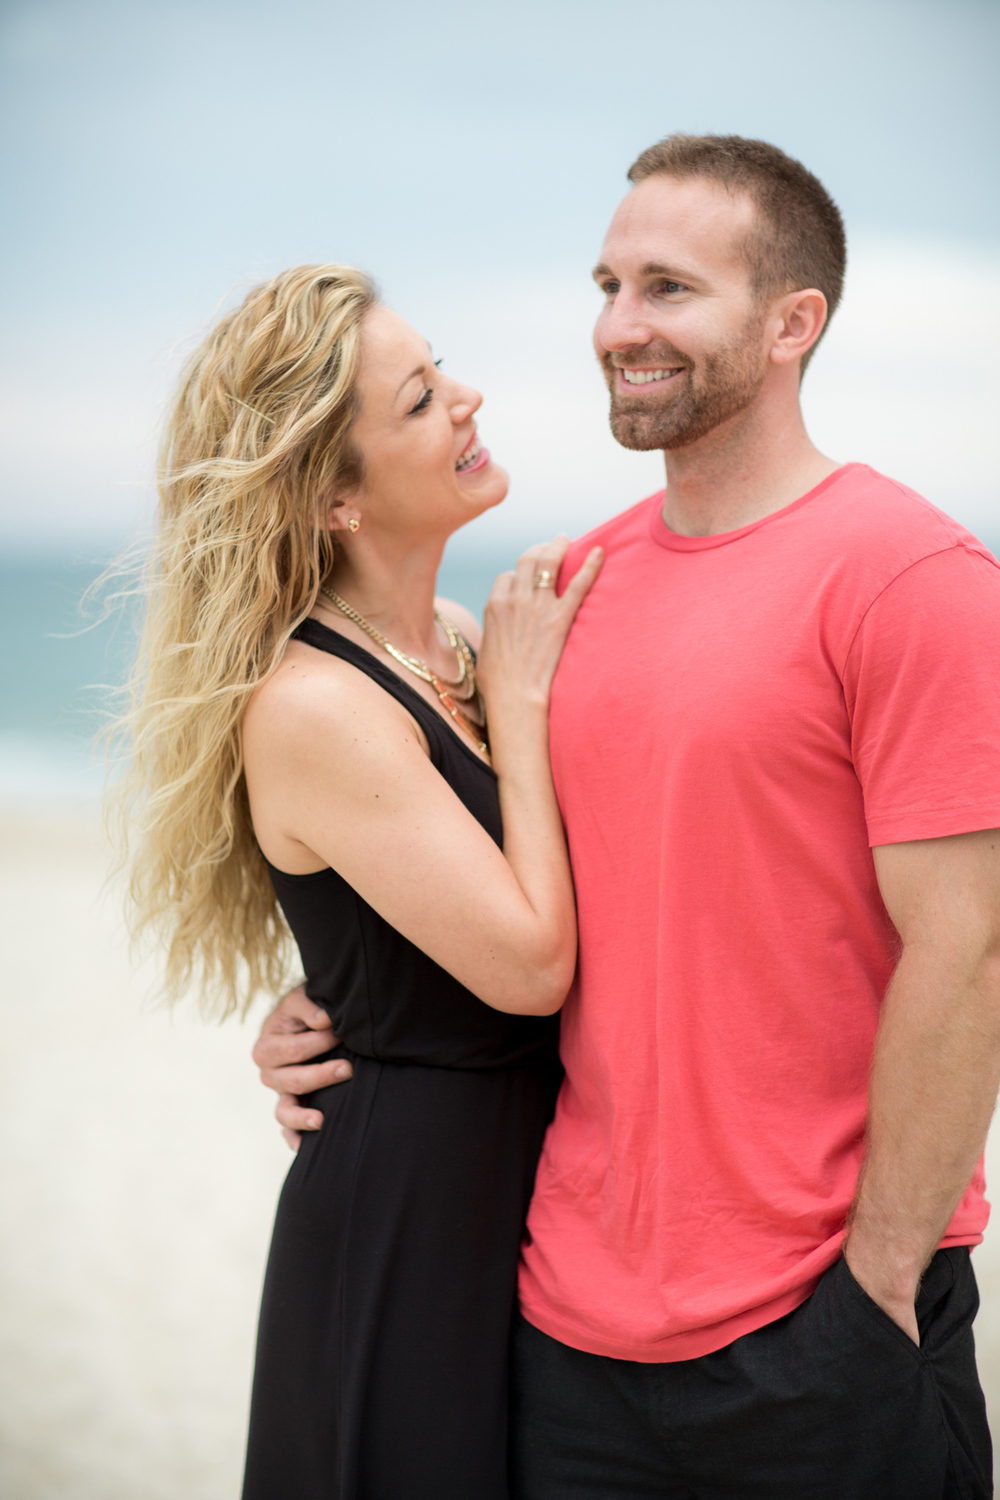 Wrightsville beach engagement session 04.jpg